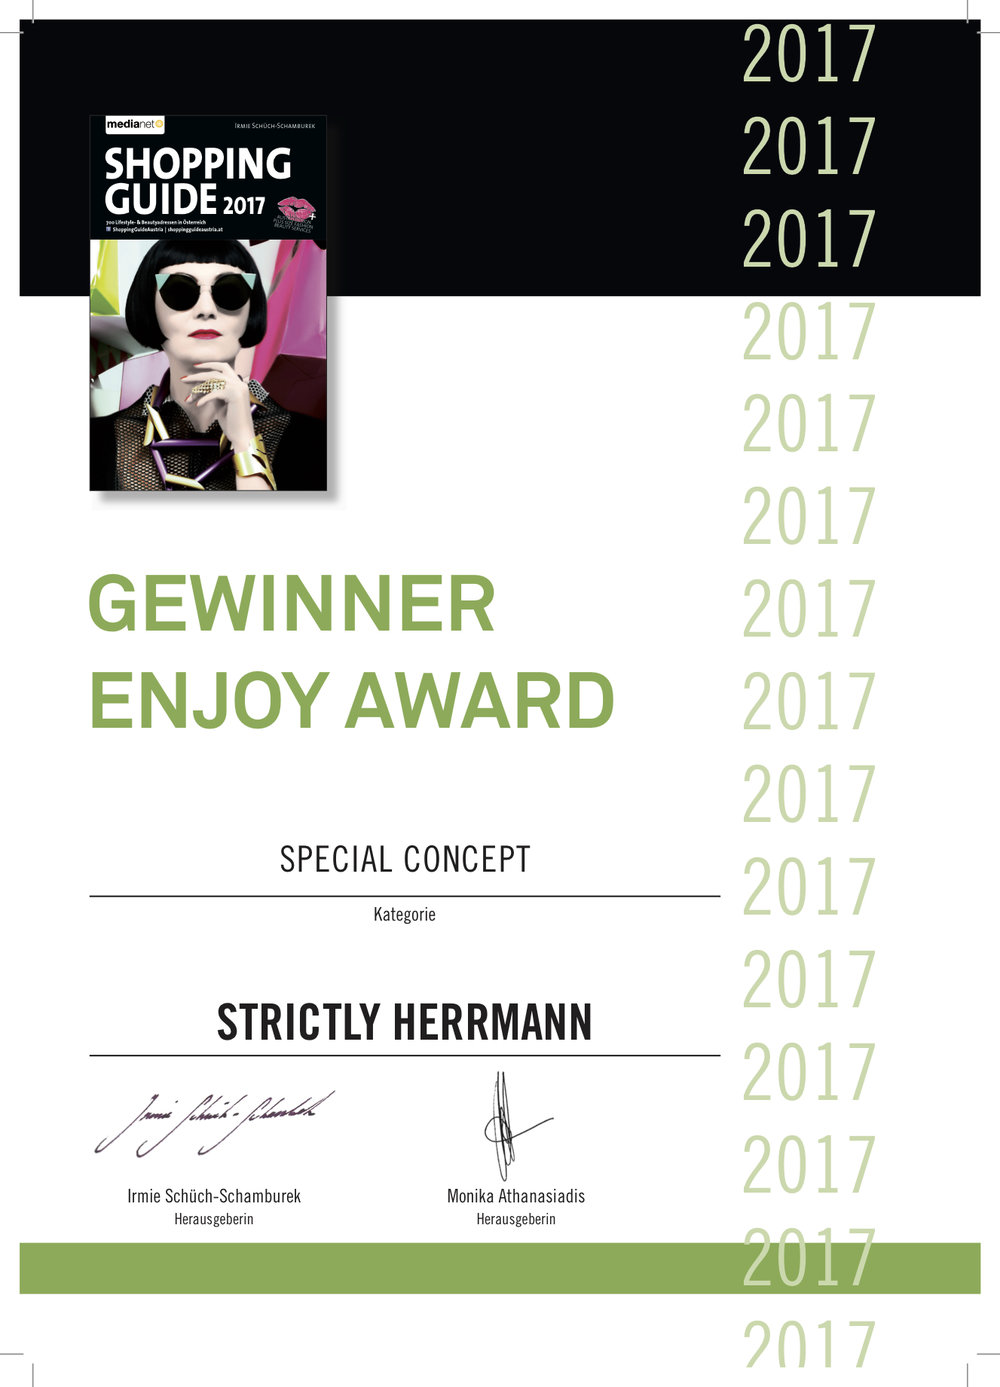 Gewinner Enjoy Award 2017, Medianet